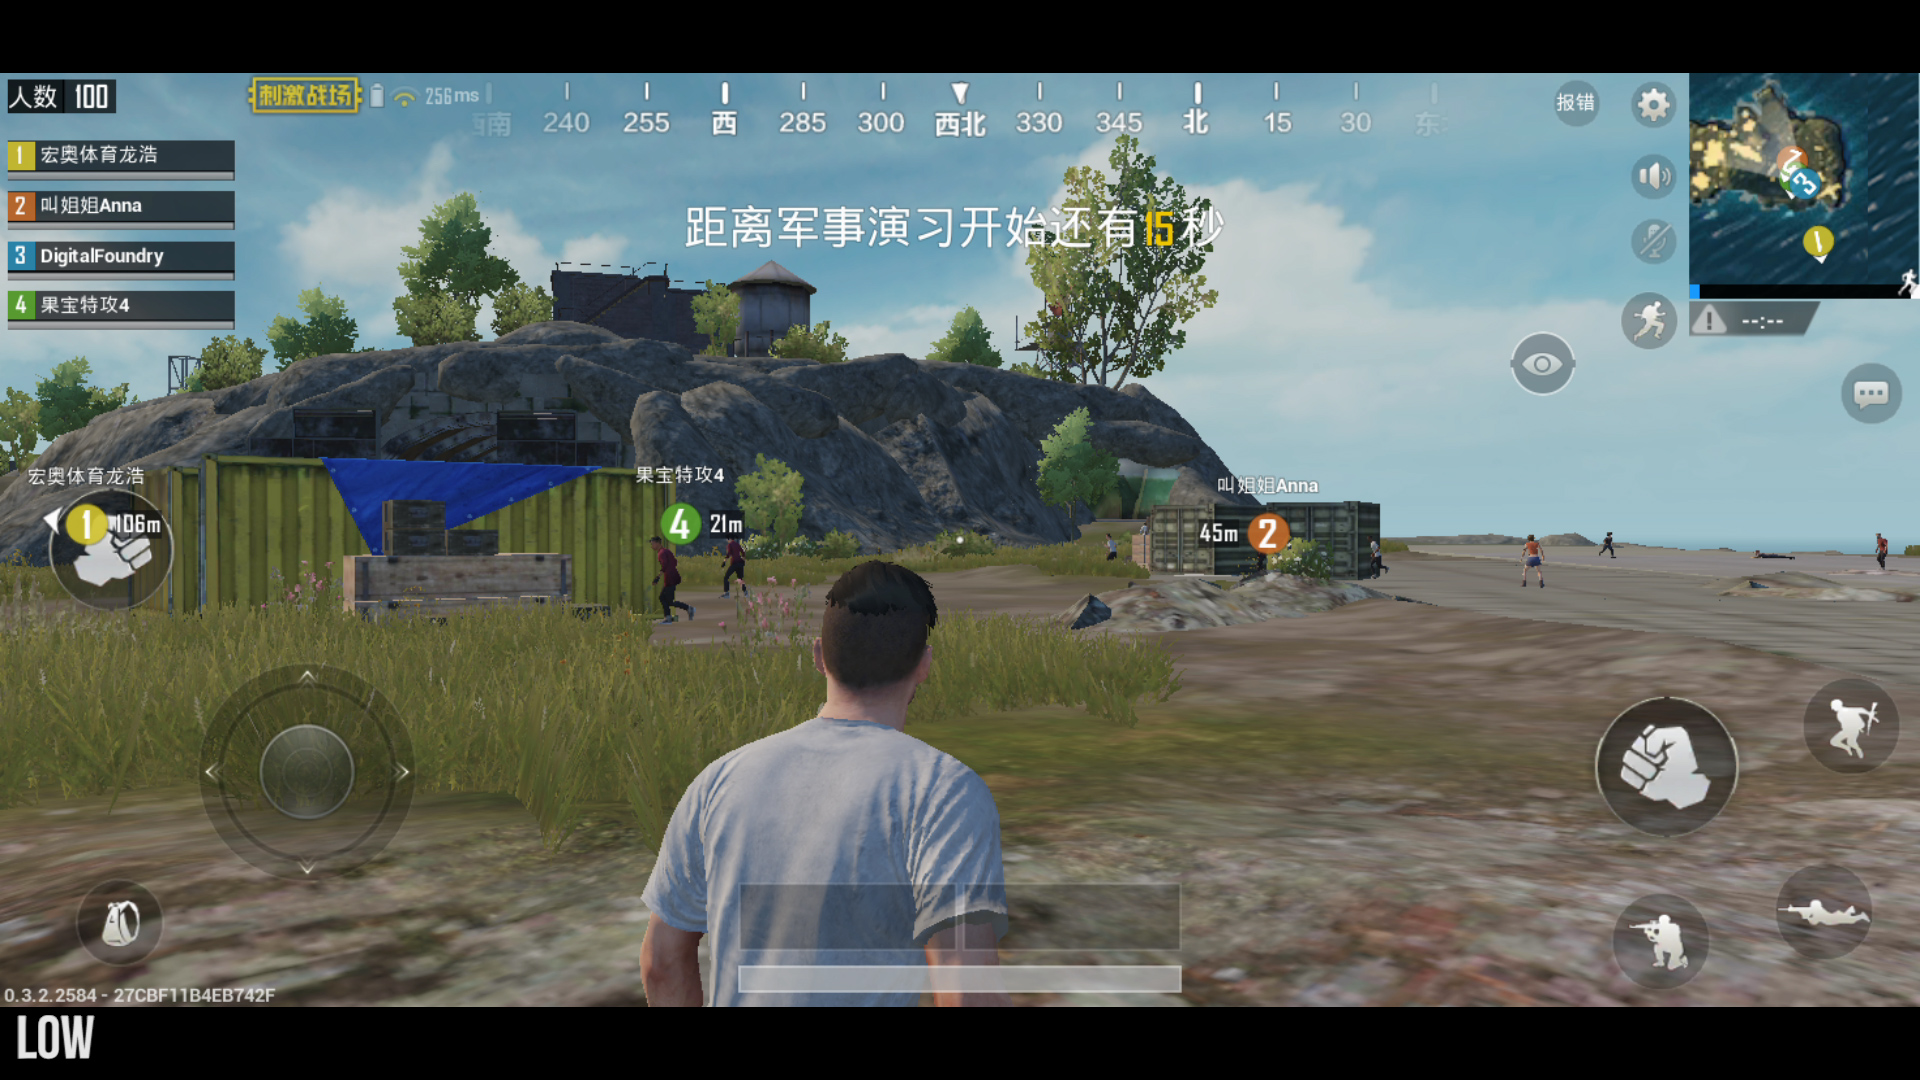 Wallpaper Engine And Pubg Pubg Mobile Analysed Top End Smartphones Compared With Pc